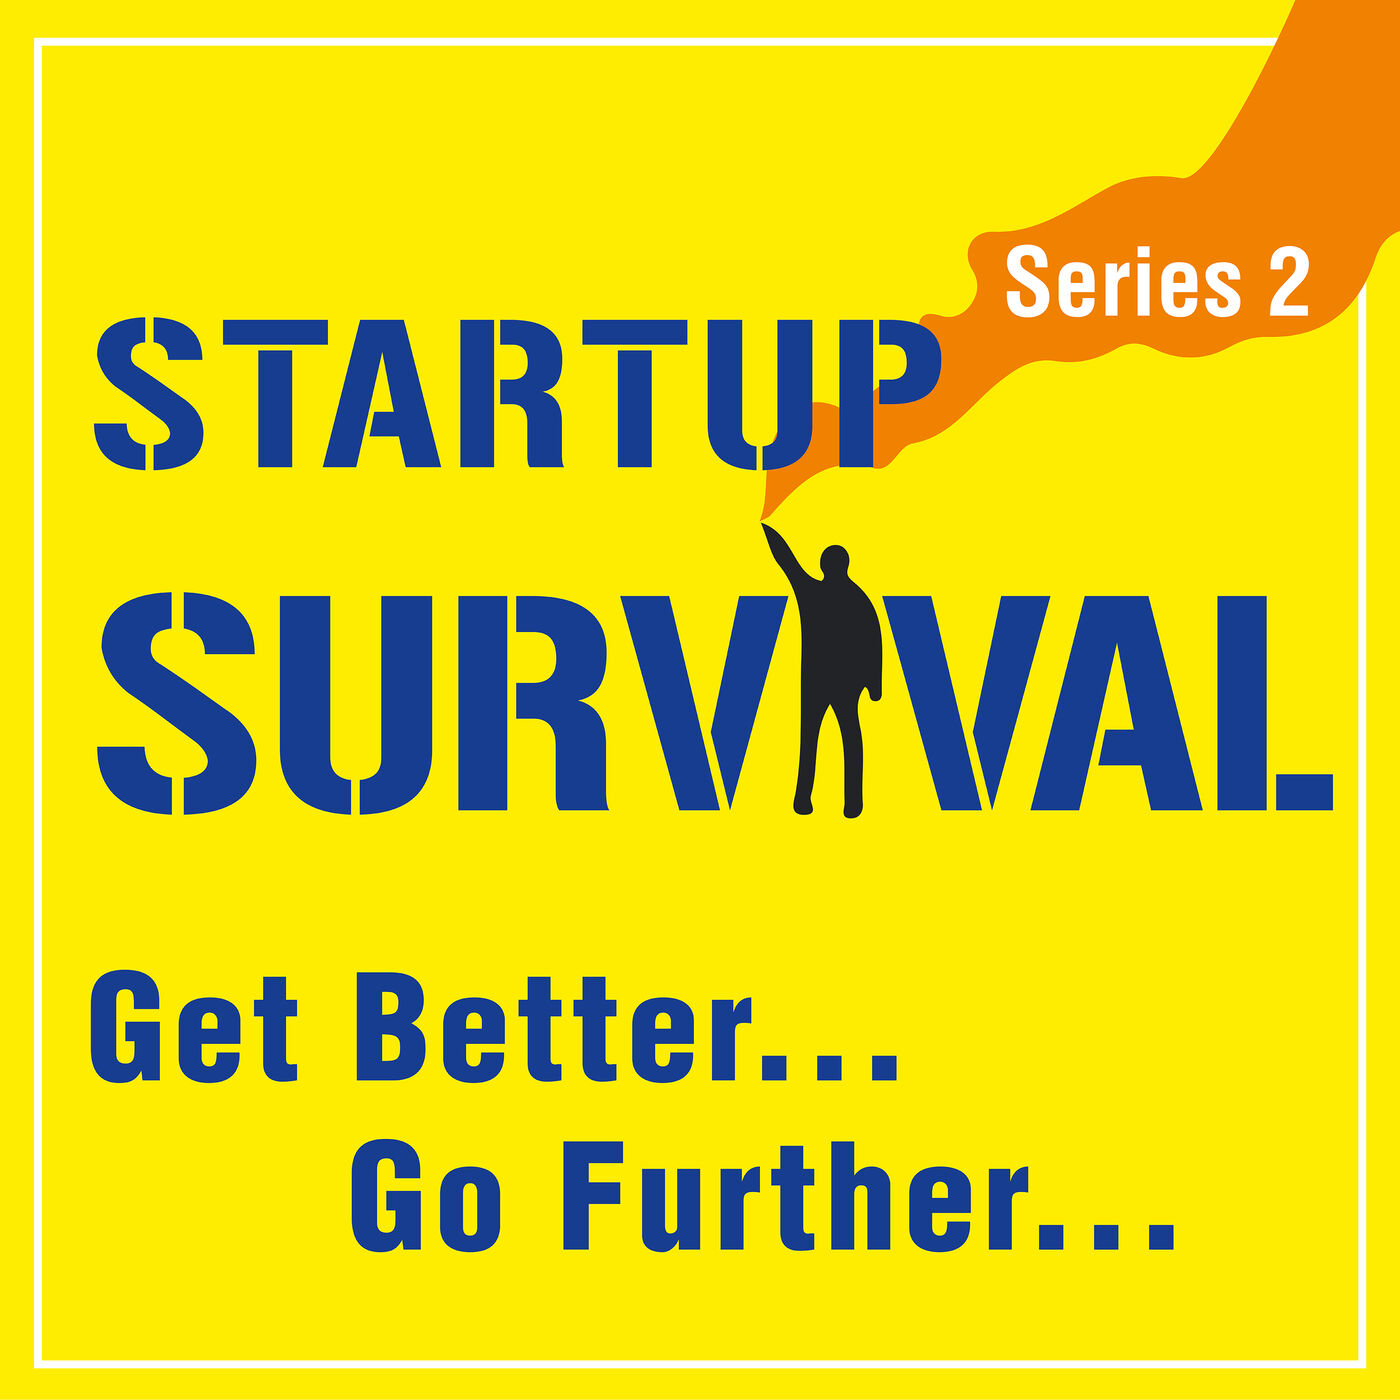 Episode 10 - Startup Marketing: What Works and what Wastes your Money and Time?